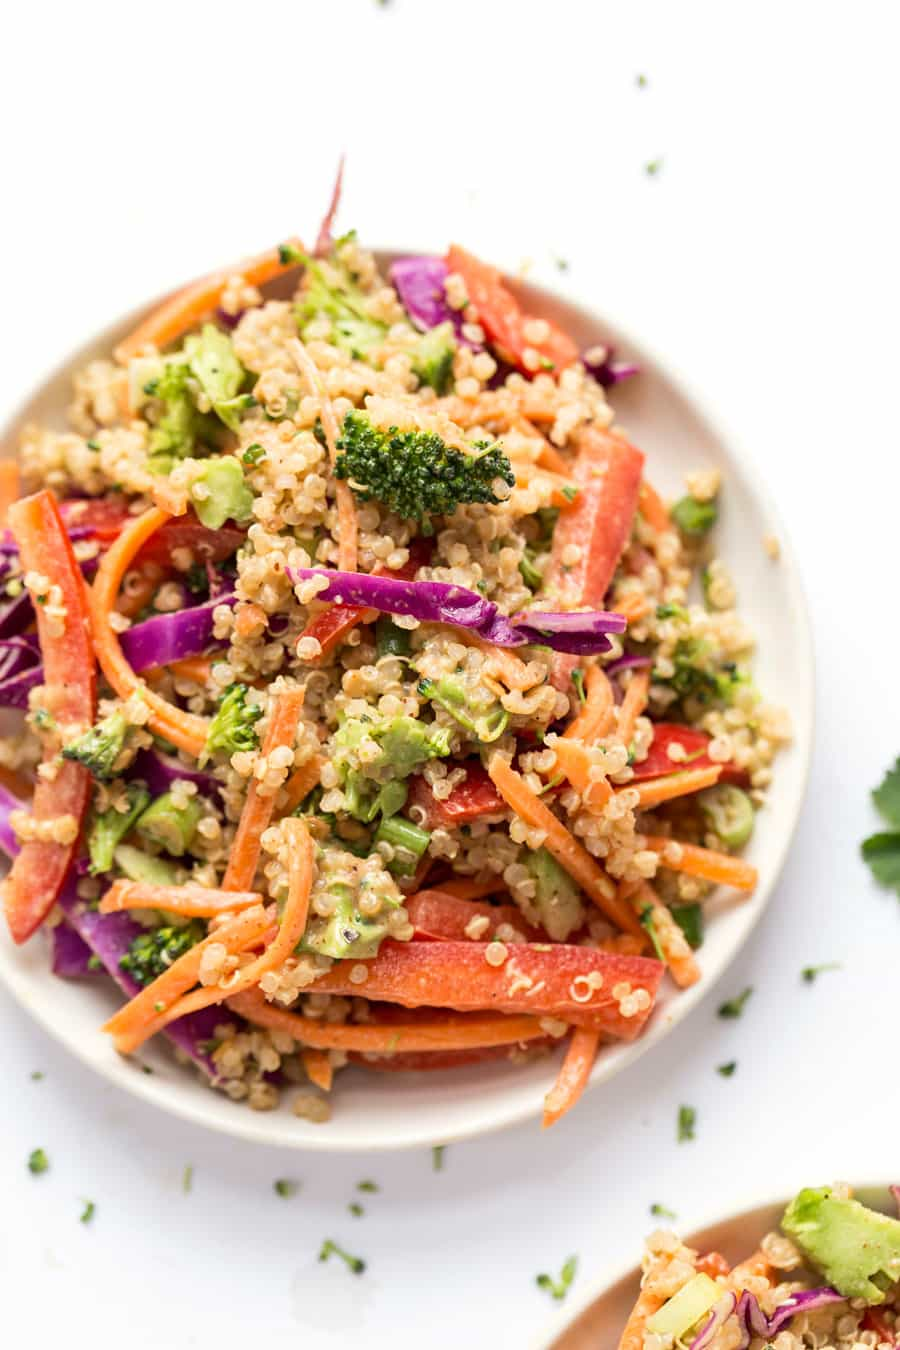 This simple THAI QUINOA SALAD is peppered with a rainbow of veggies and tossed in a creamy almond butter sauce! Tastes like pad thai, but in salad form!